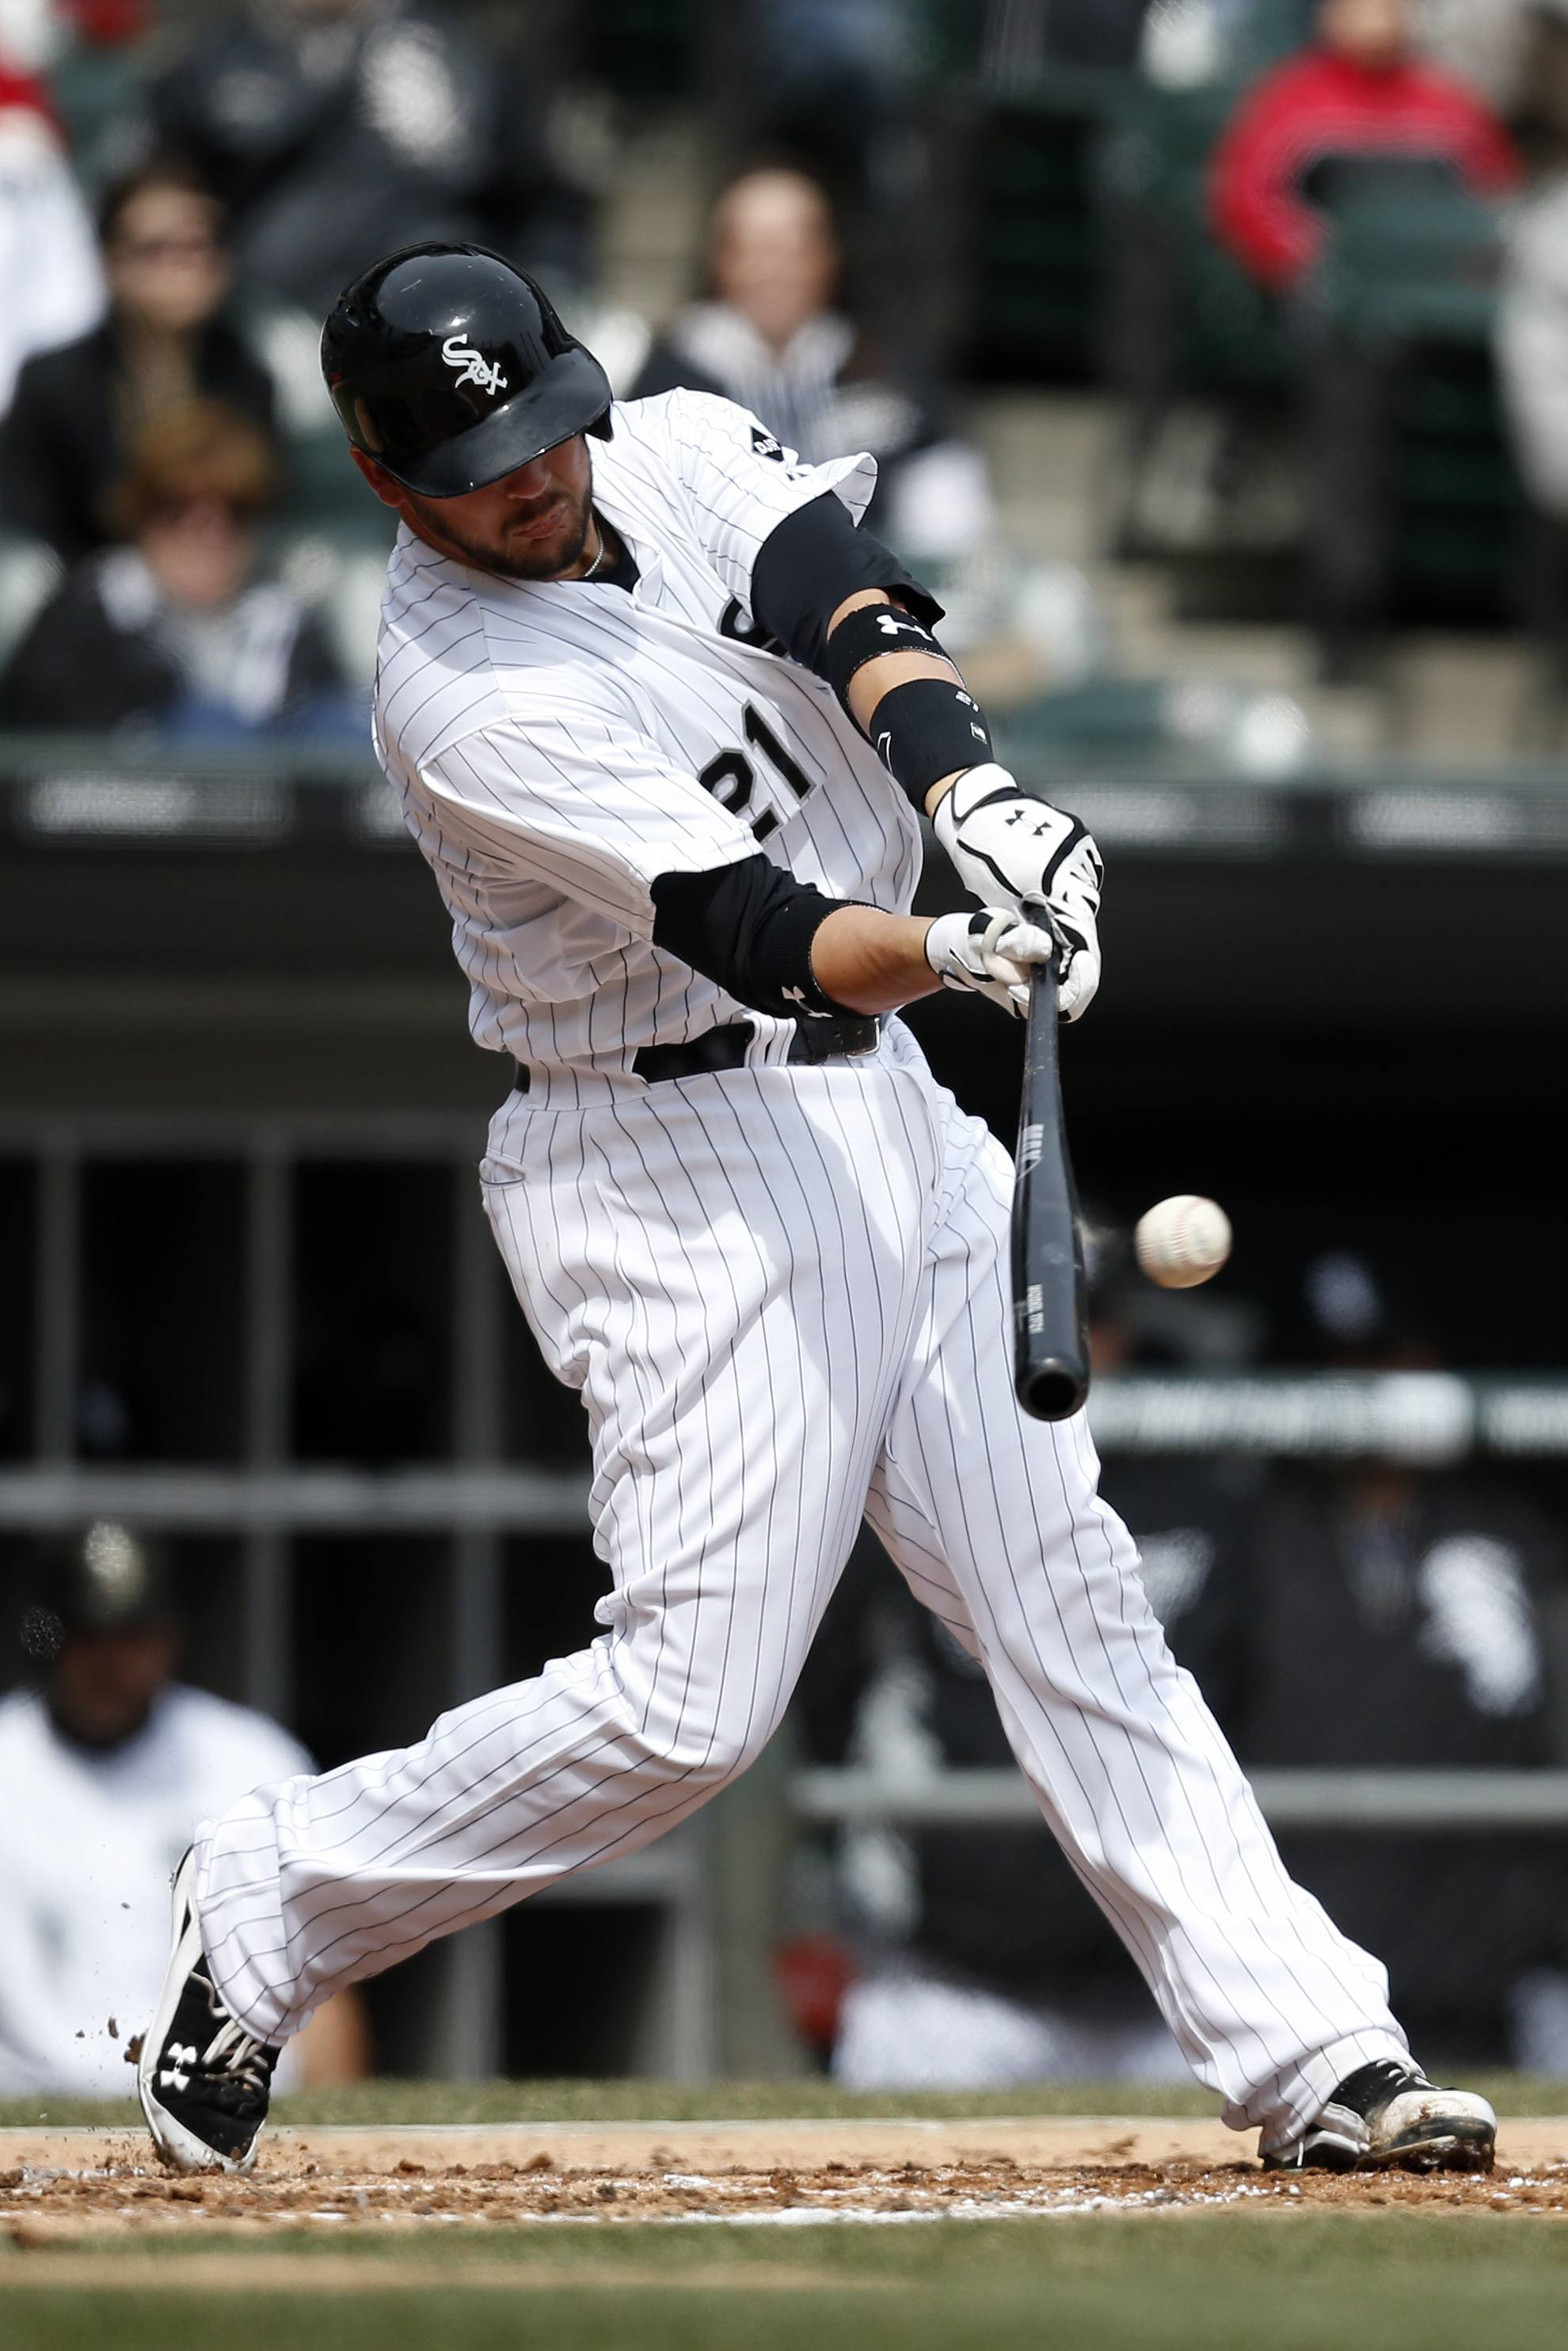 White Sox catcher Tyler Flowers hits a single against the Minnesota Twins during the second inning of a baseball game on Wednesday in Chicago.